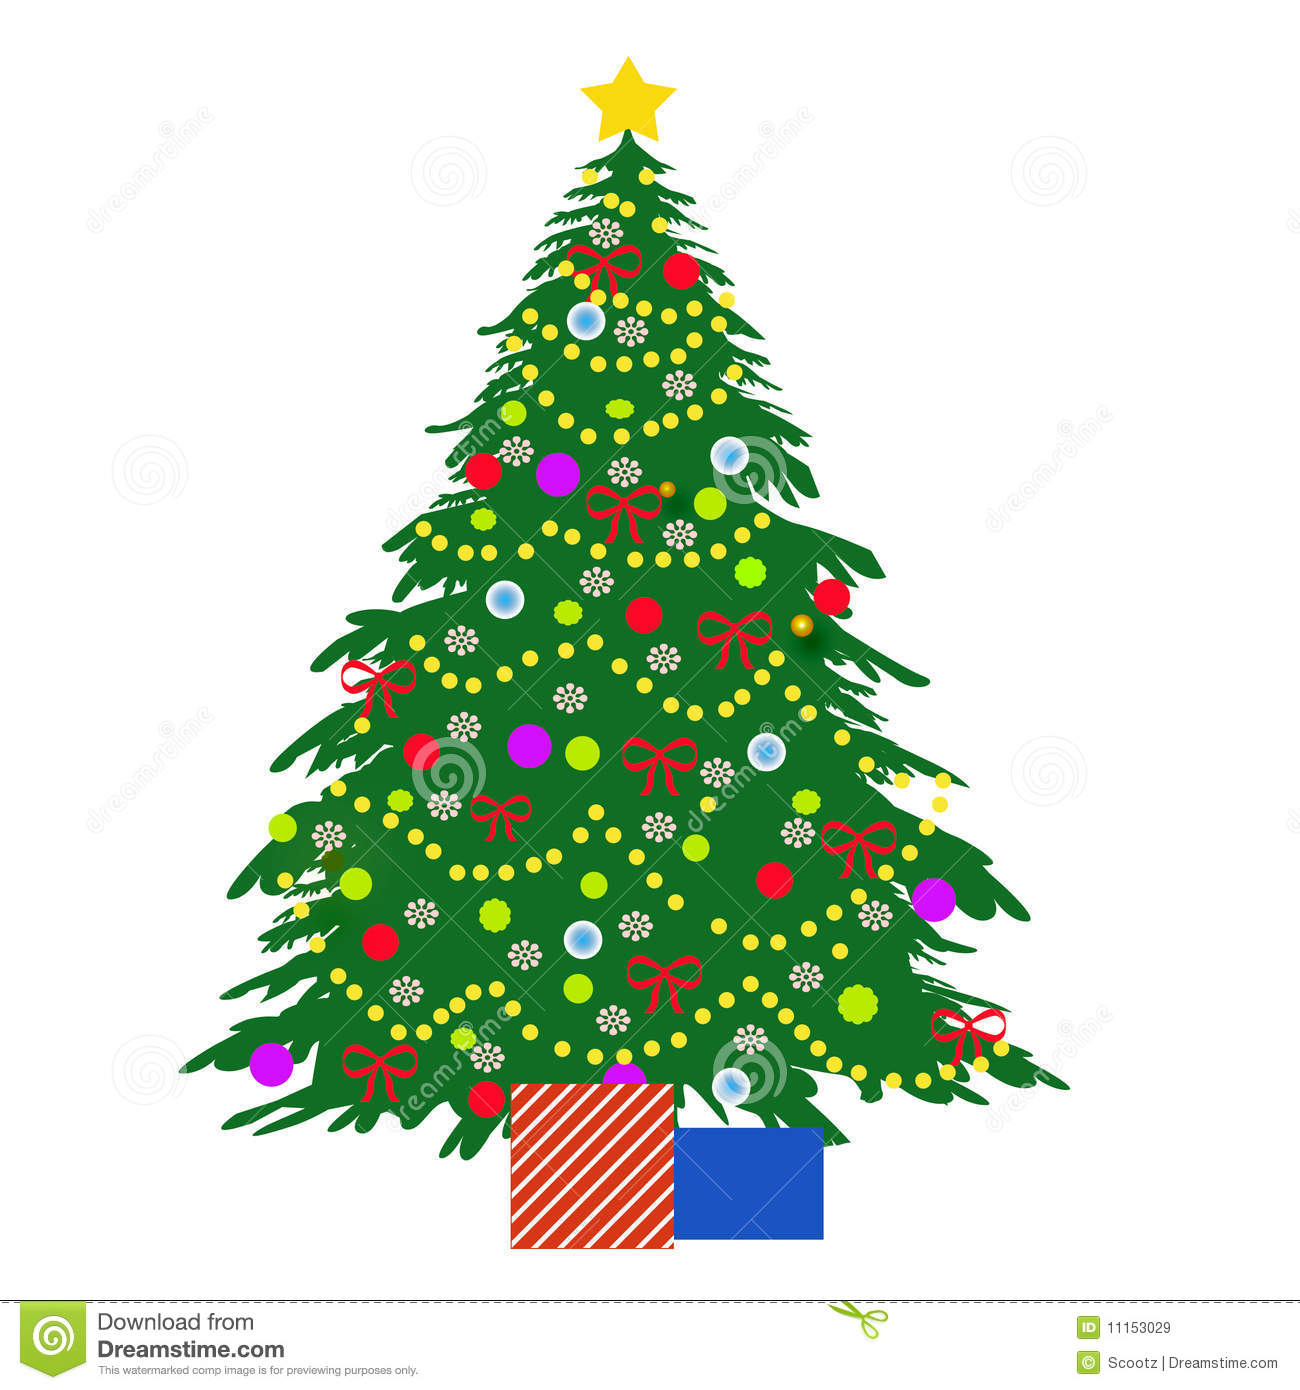 Christmas Tree Illustration Royalty Free Stock Images - Image ...